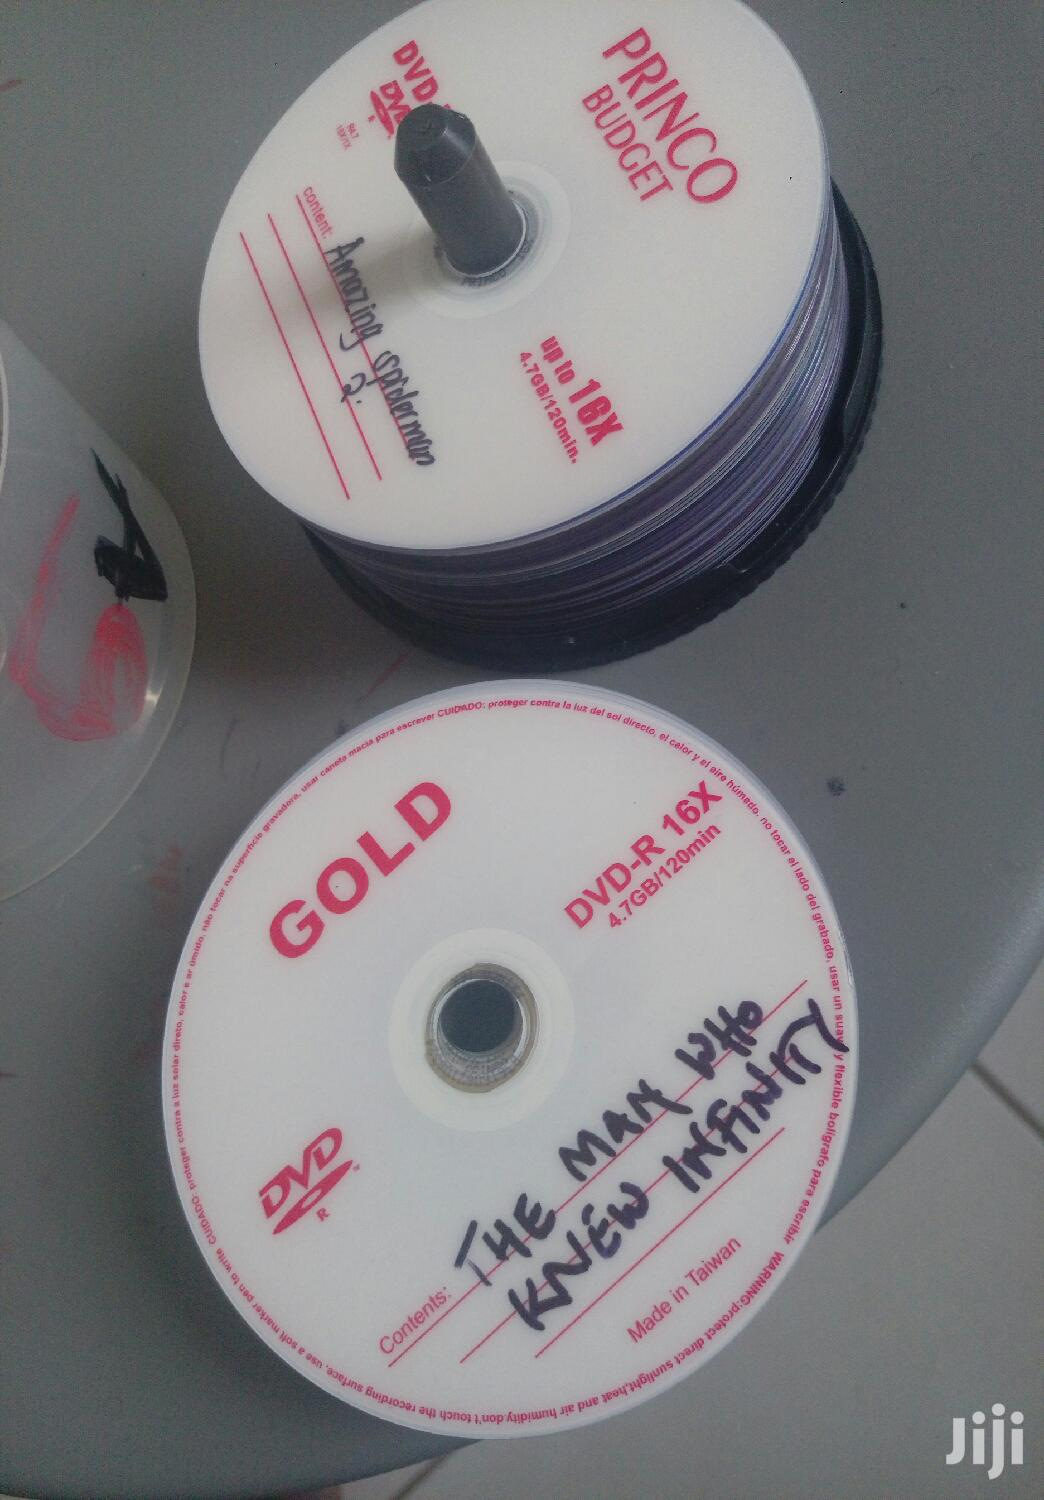 Archive: Movie And Series Collection